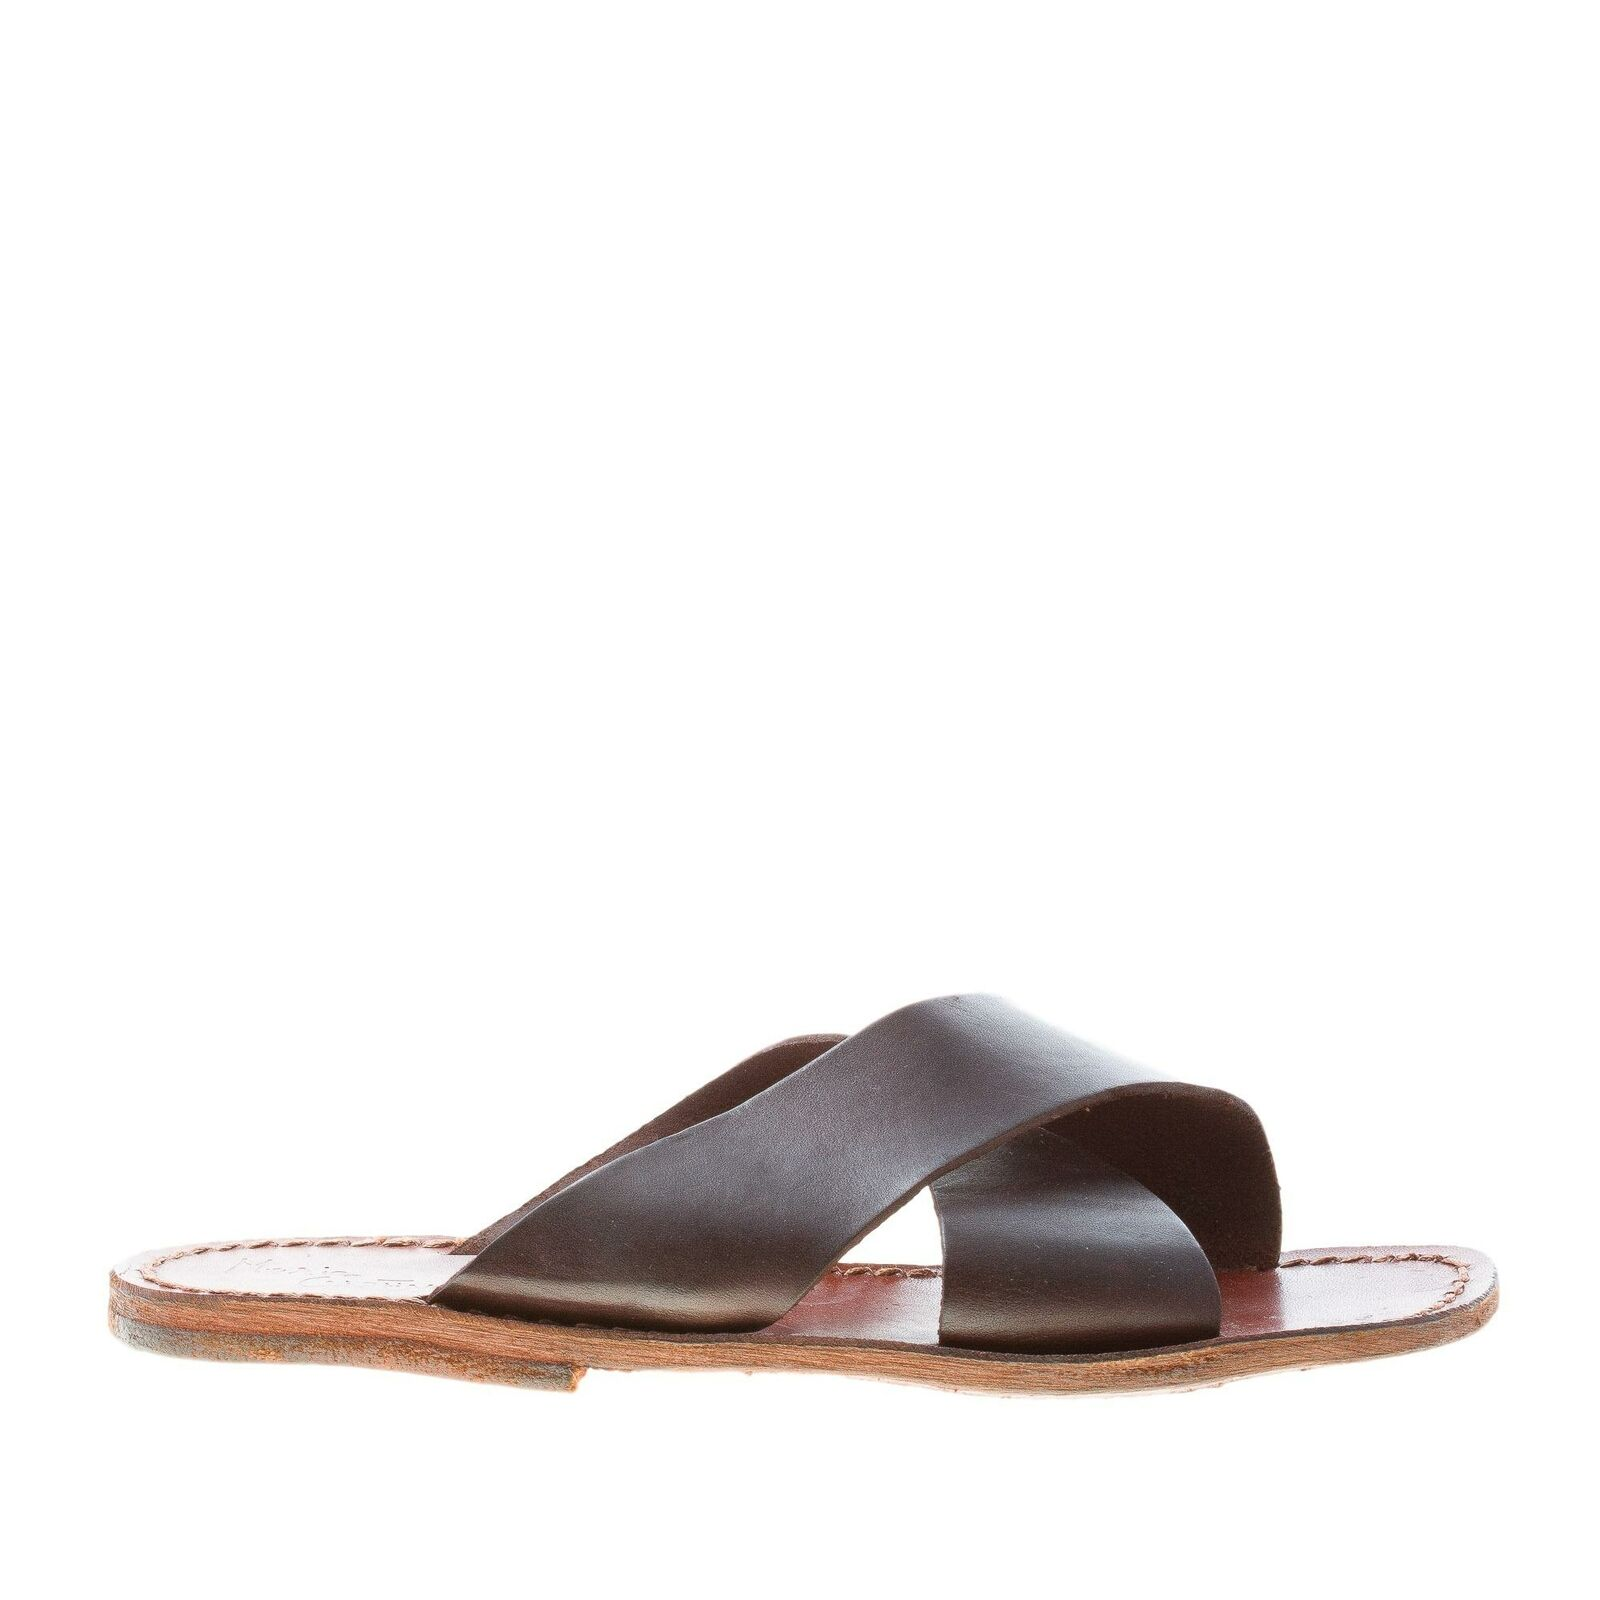 MARIA CRISTINA men zapatos Dark marrón leather slide crossed sandal made in